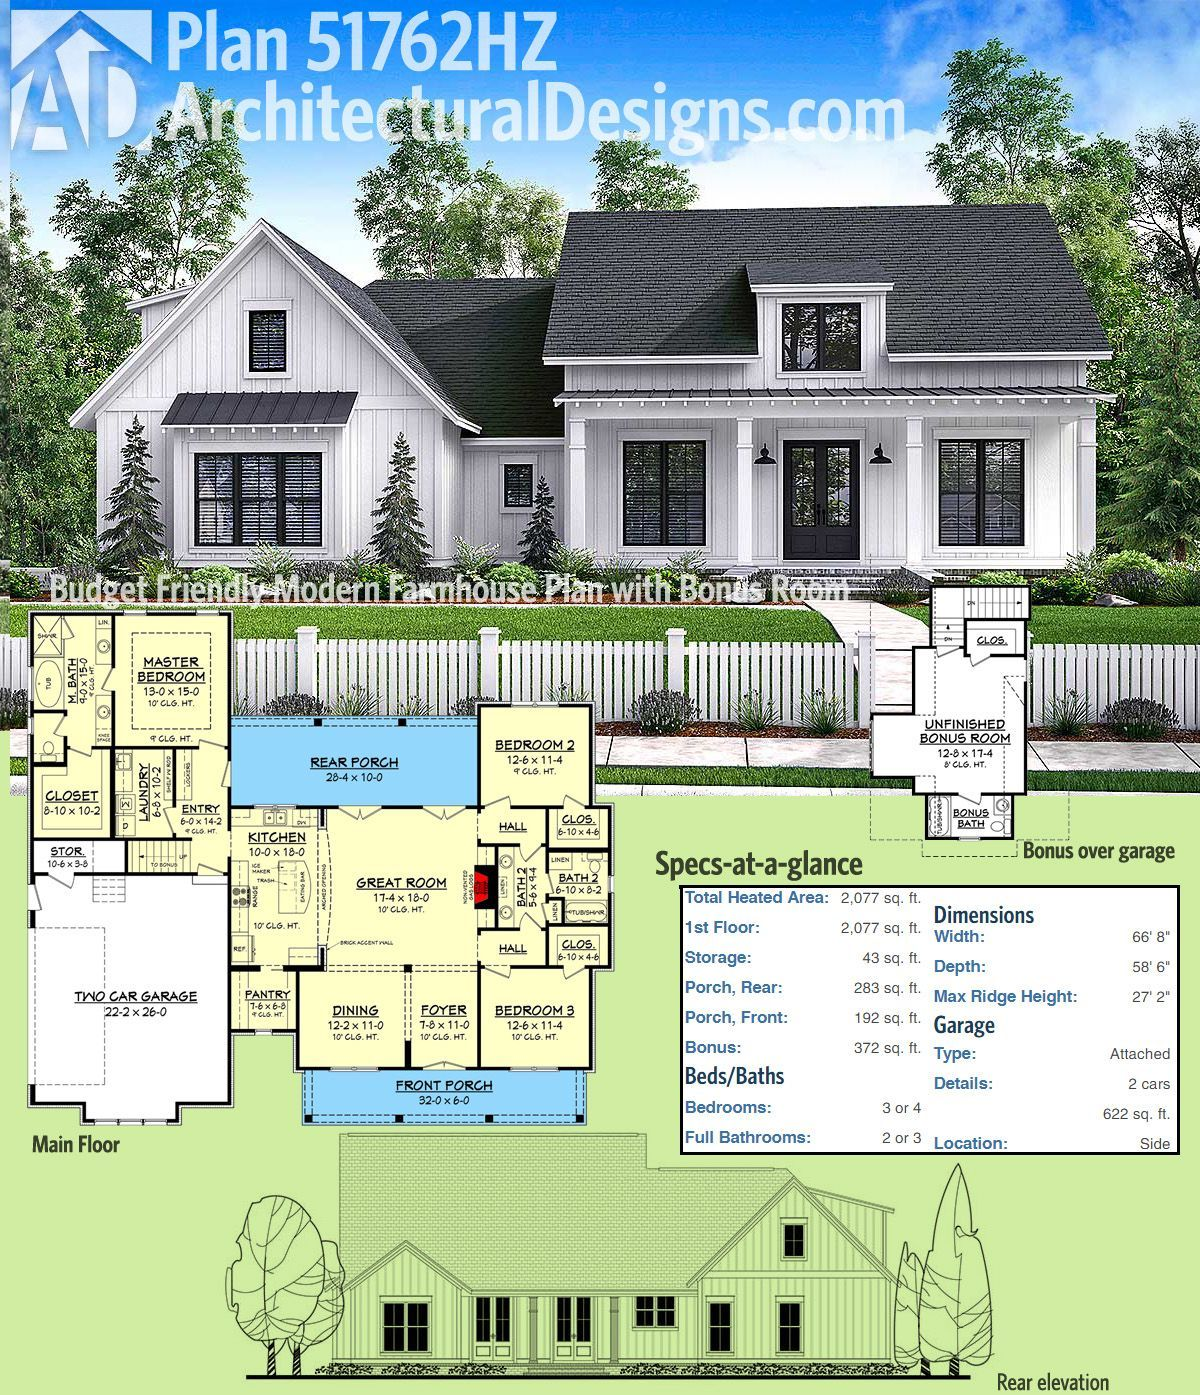 Architectural Designs Modern Farmhouse Plan 51762HZ Gives